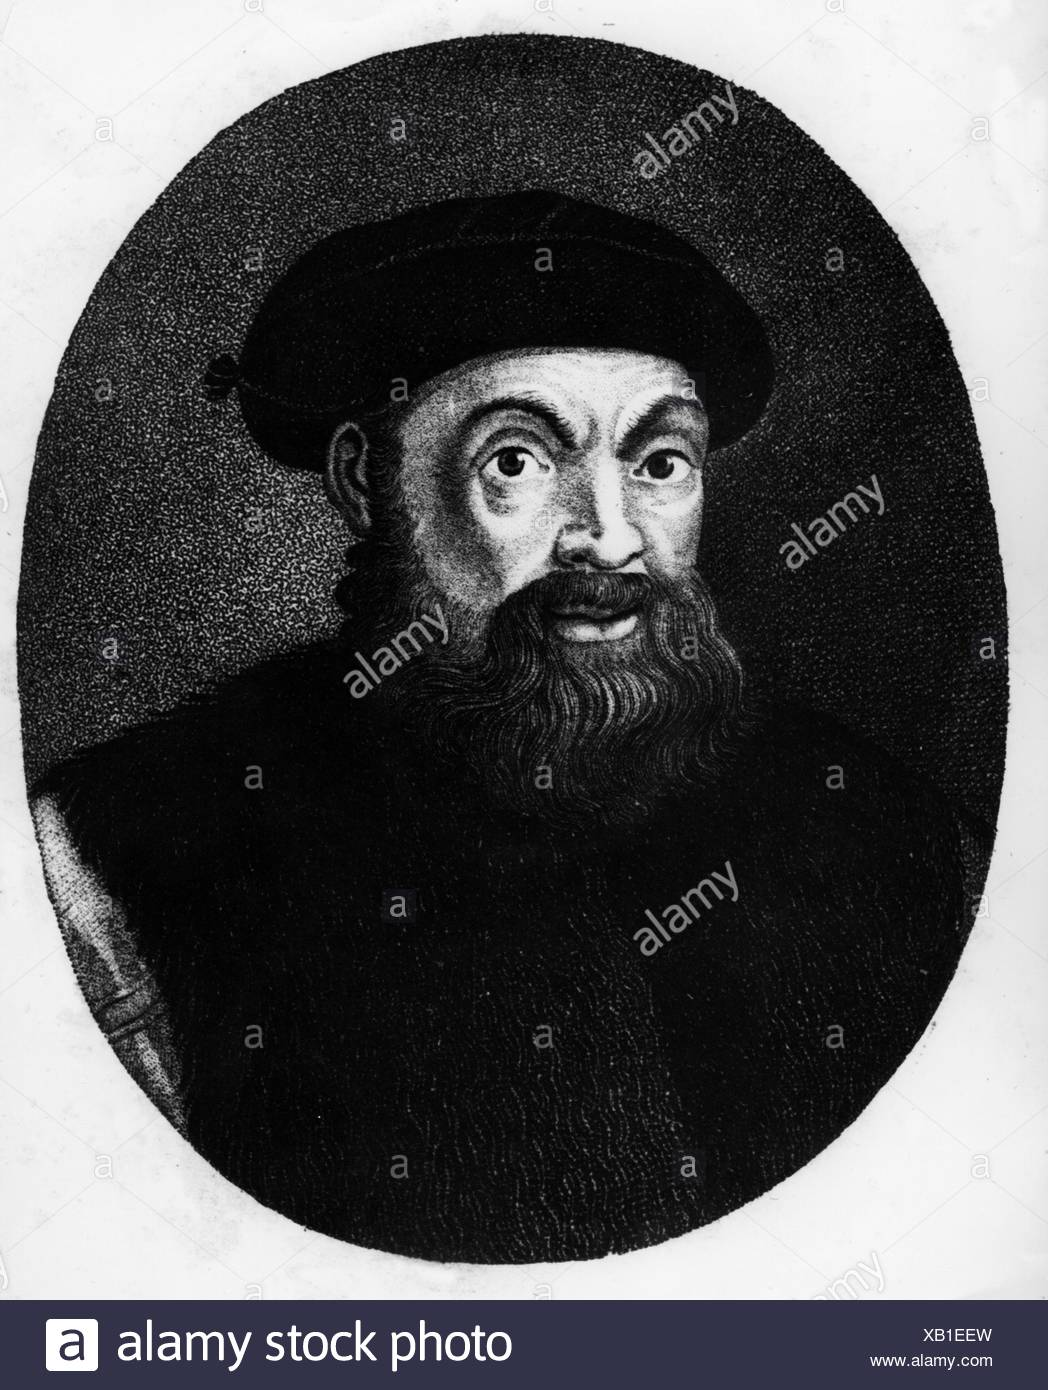 Magellaan, Ferdinand (Magalhaes, Fernao de), 1480 - 27.4.1521, Portuguese navigator and explorer, portrait, Additional-Rights-Clearances-NA - Stock Image